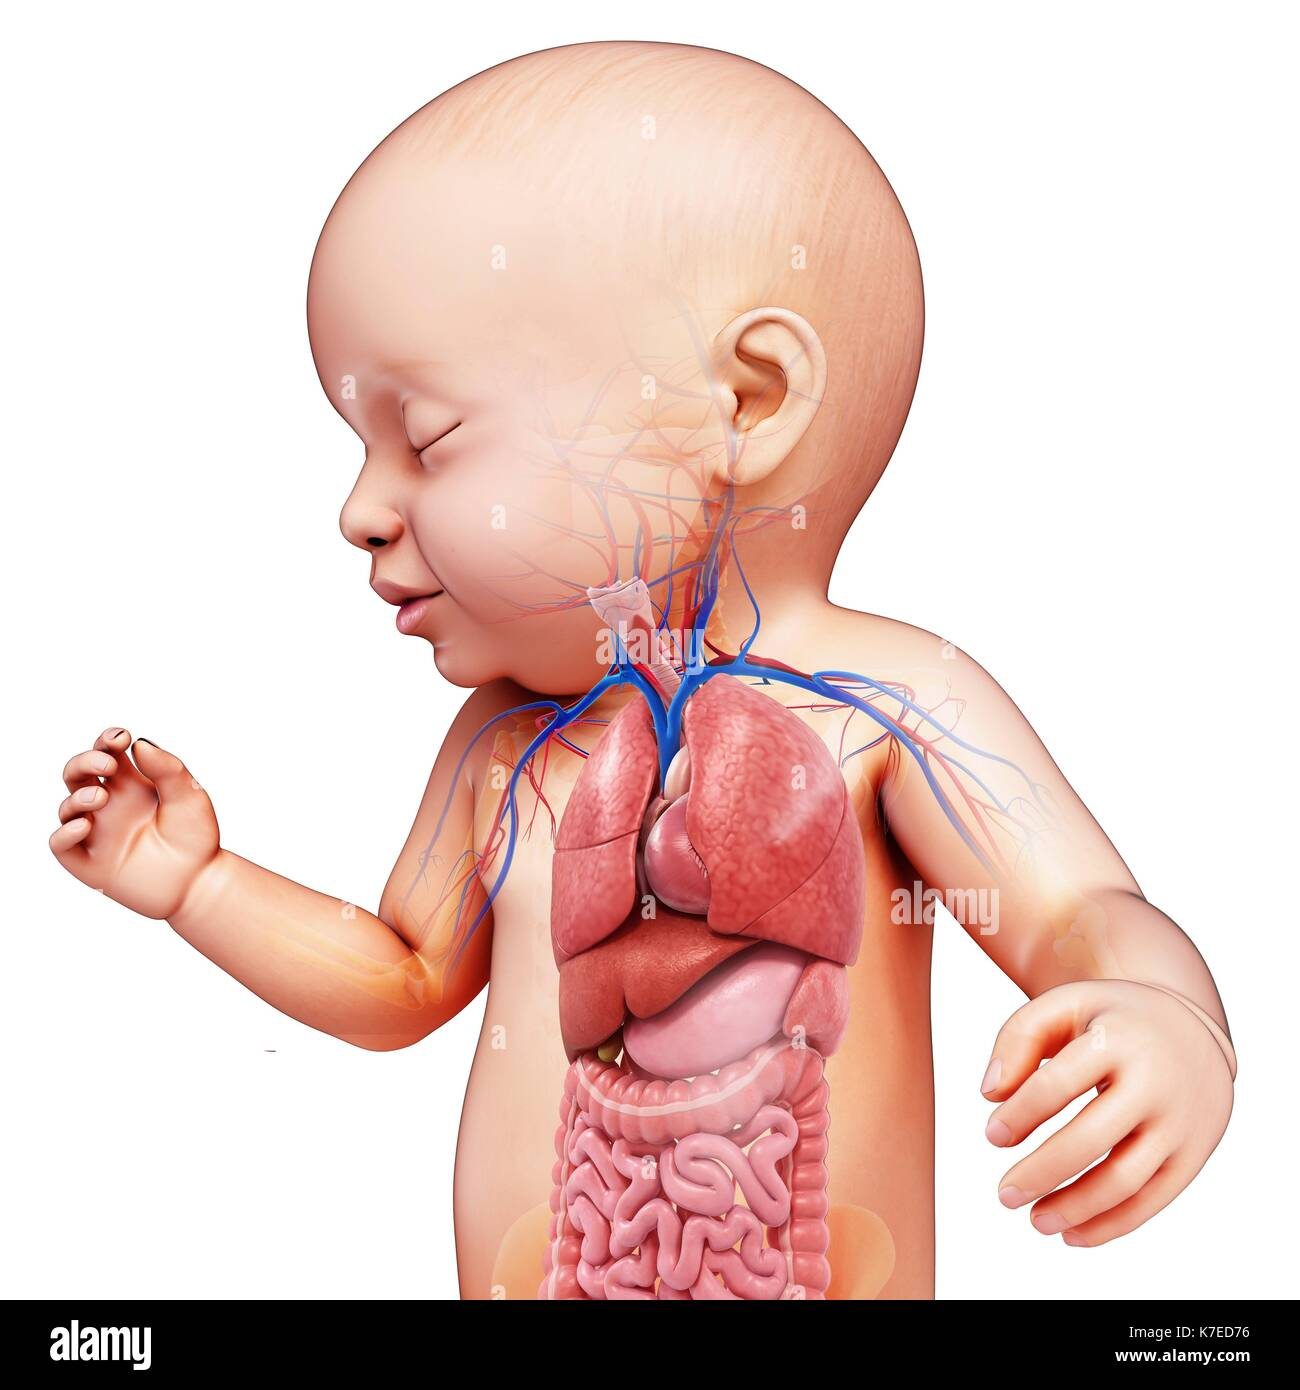 Illustration of a baby\'s body organs Stock Photo: 159513626 - Alamy